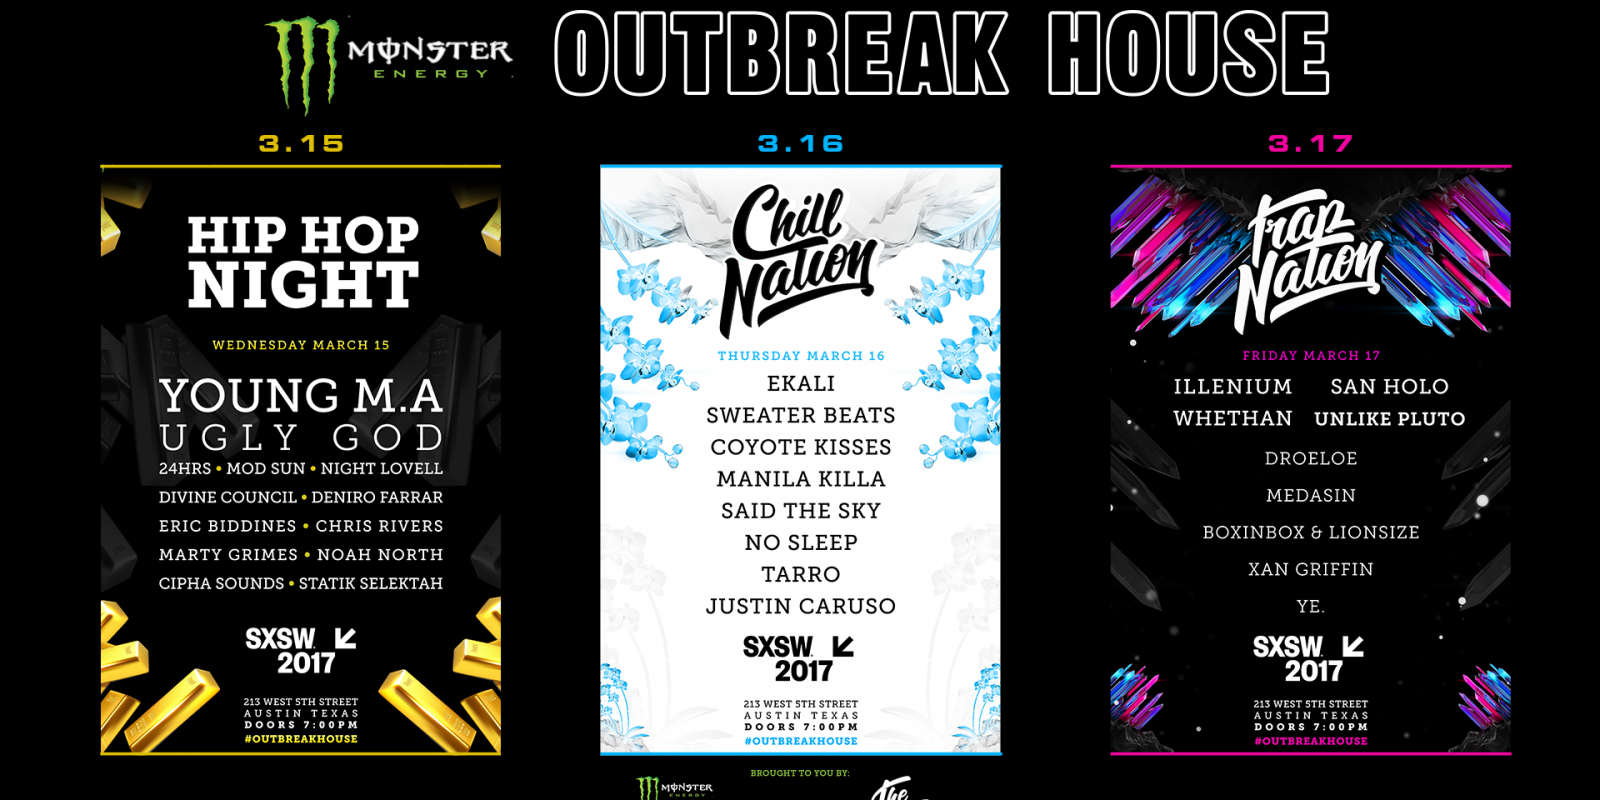 announcement flyers for SXSW outbreak house announcement